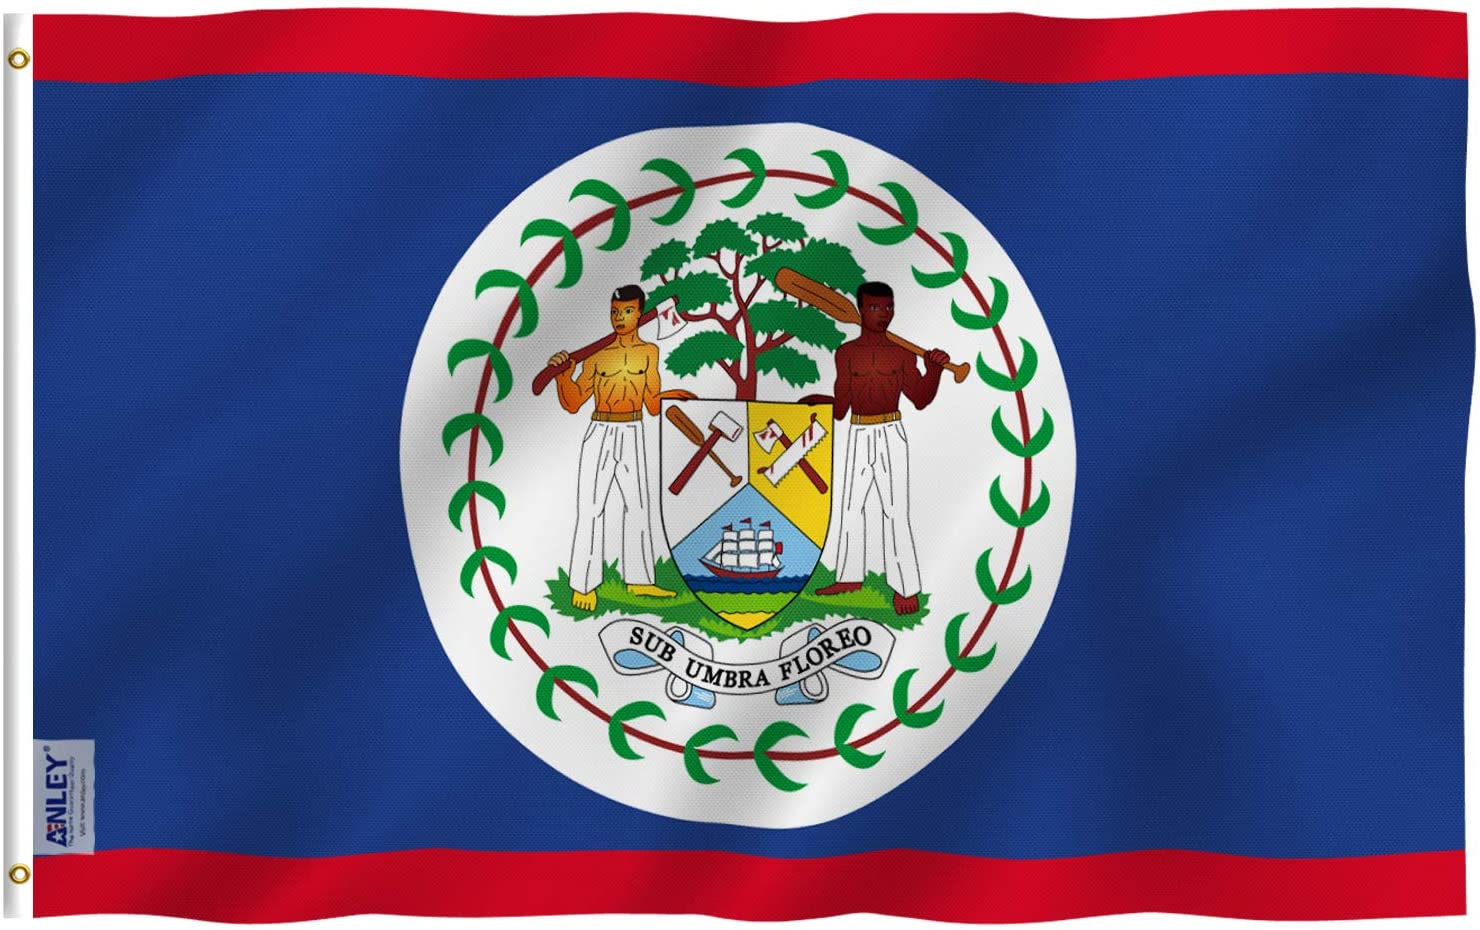 Anley Fly Breeze 3x5 Foot Belize Flag - Vivid Color and Fade Proof - Canvas Header and Double Stitched - Belizean National Flags Polyester with Brass Grommets 3 X 5 Ft